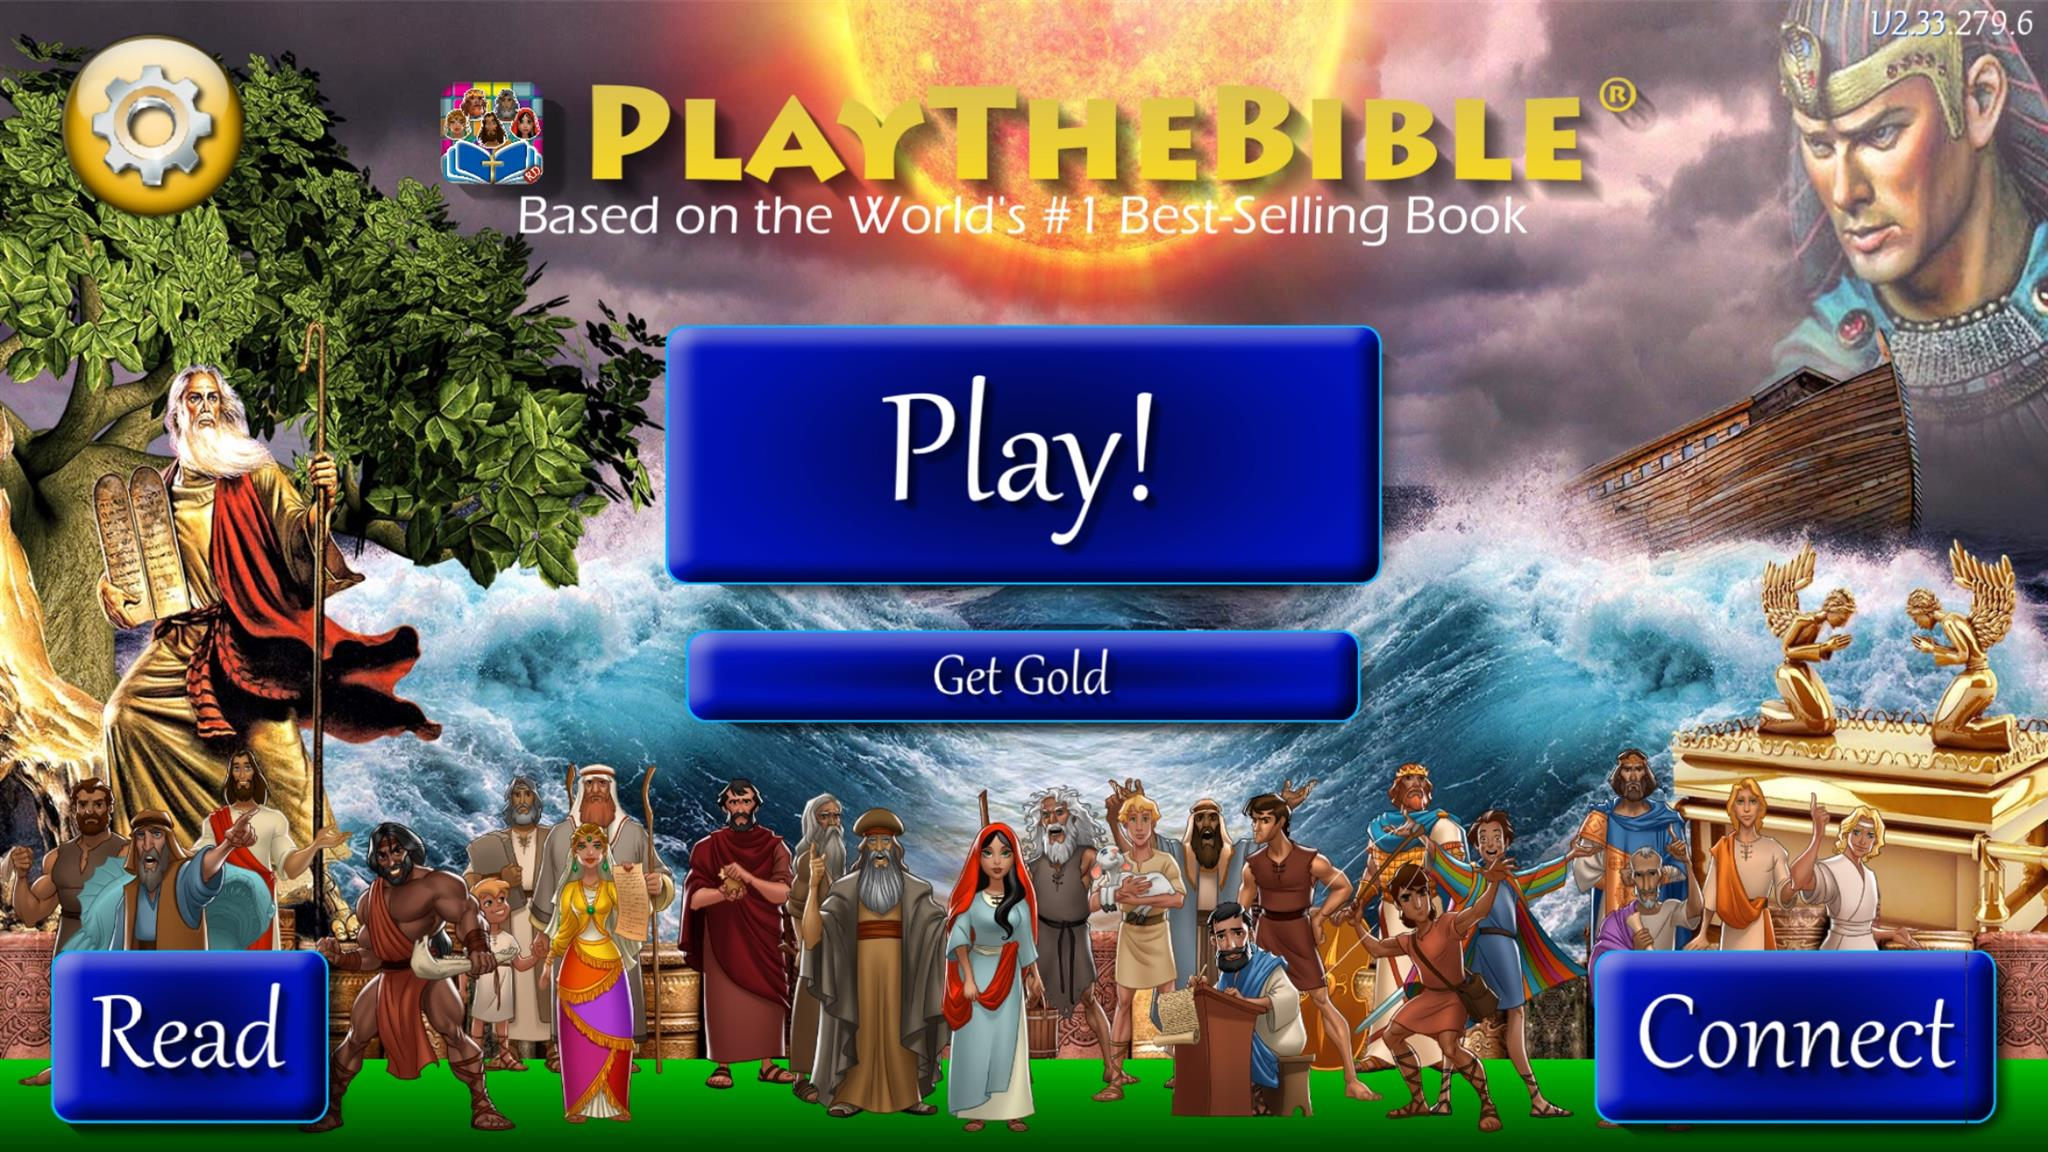 Bible Games is what We Need to Have a God-Fearing Generation